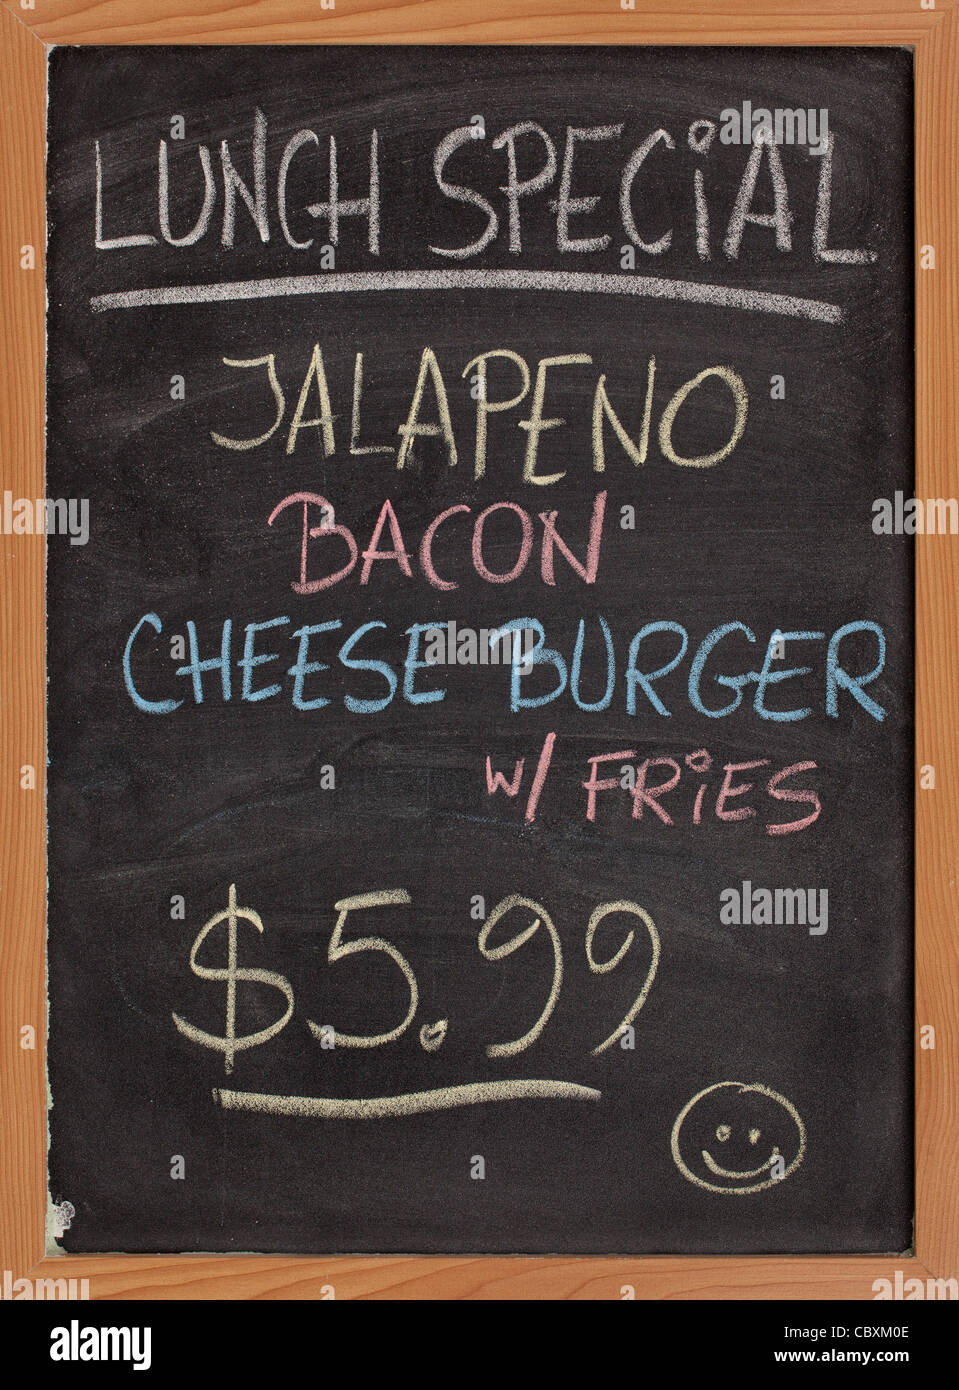 jalapeno, bacon, cheese burger, fries - lunch special menu - vertical blackboard sign with color chalk handwriting - Stock Image